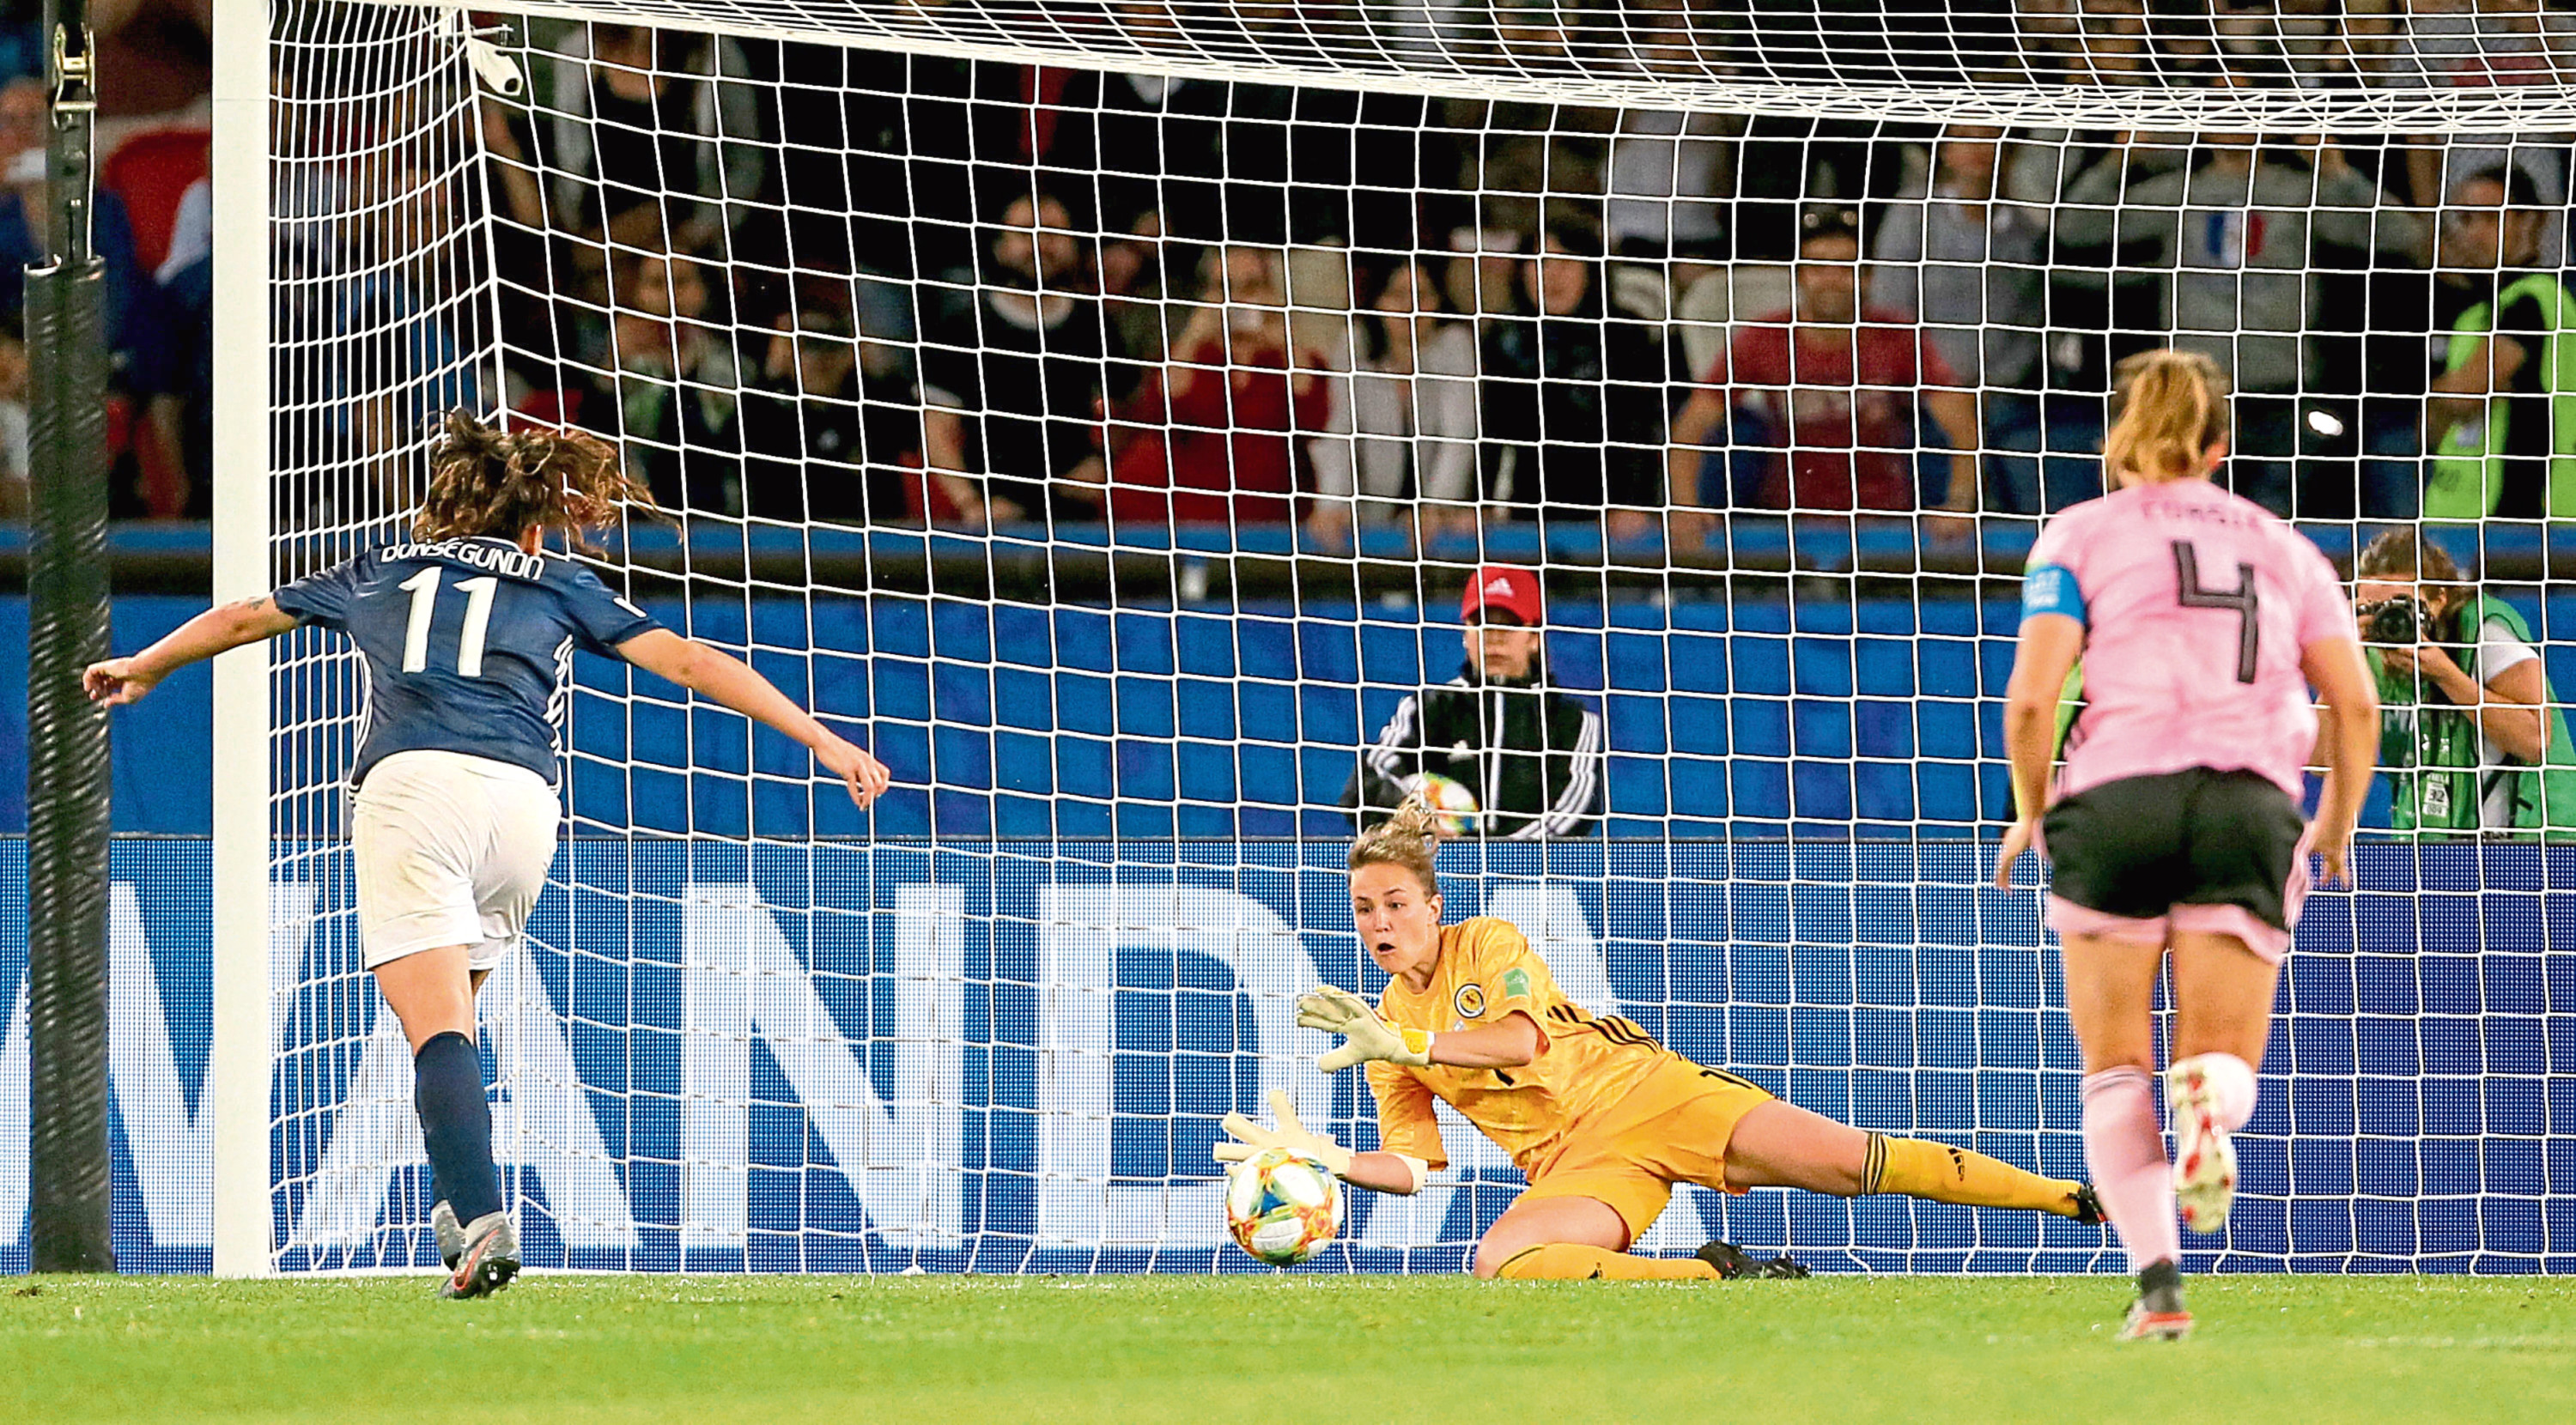 Scotland goalkeeper Lee Alexander saves a penalty from Argentina's Florencia Bonsegundo, but is off her line so it is ordered to be re-taken, during the FIFA Women's World Cup, Group D match at the Parc des Princes, Paris.